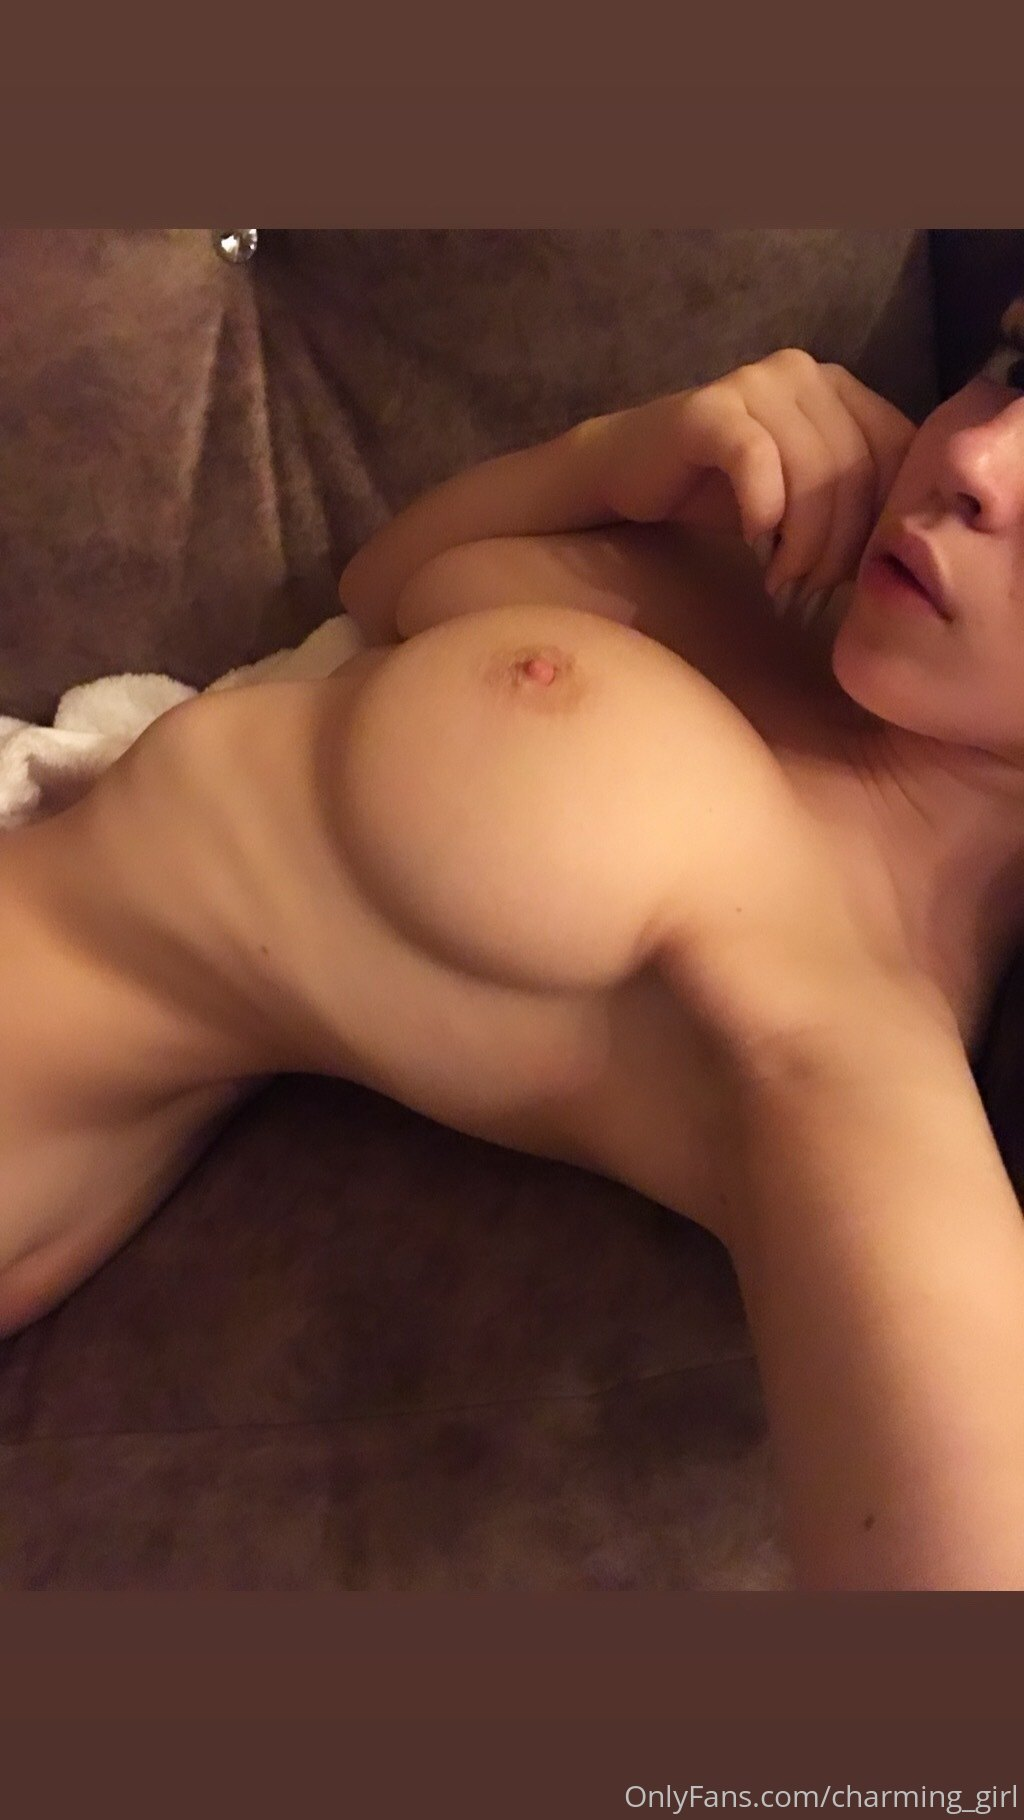 Charming girl Porn OnlyFans Leaked Nudes 54